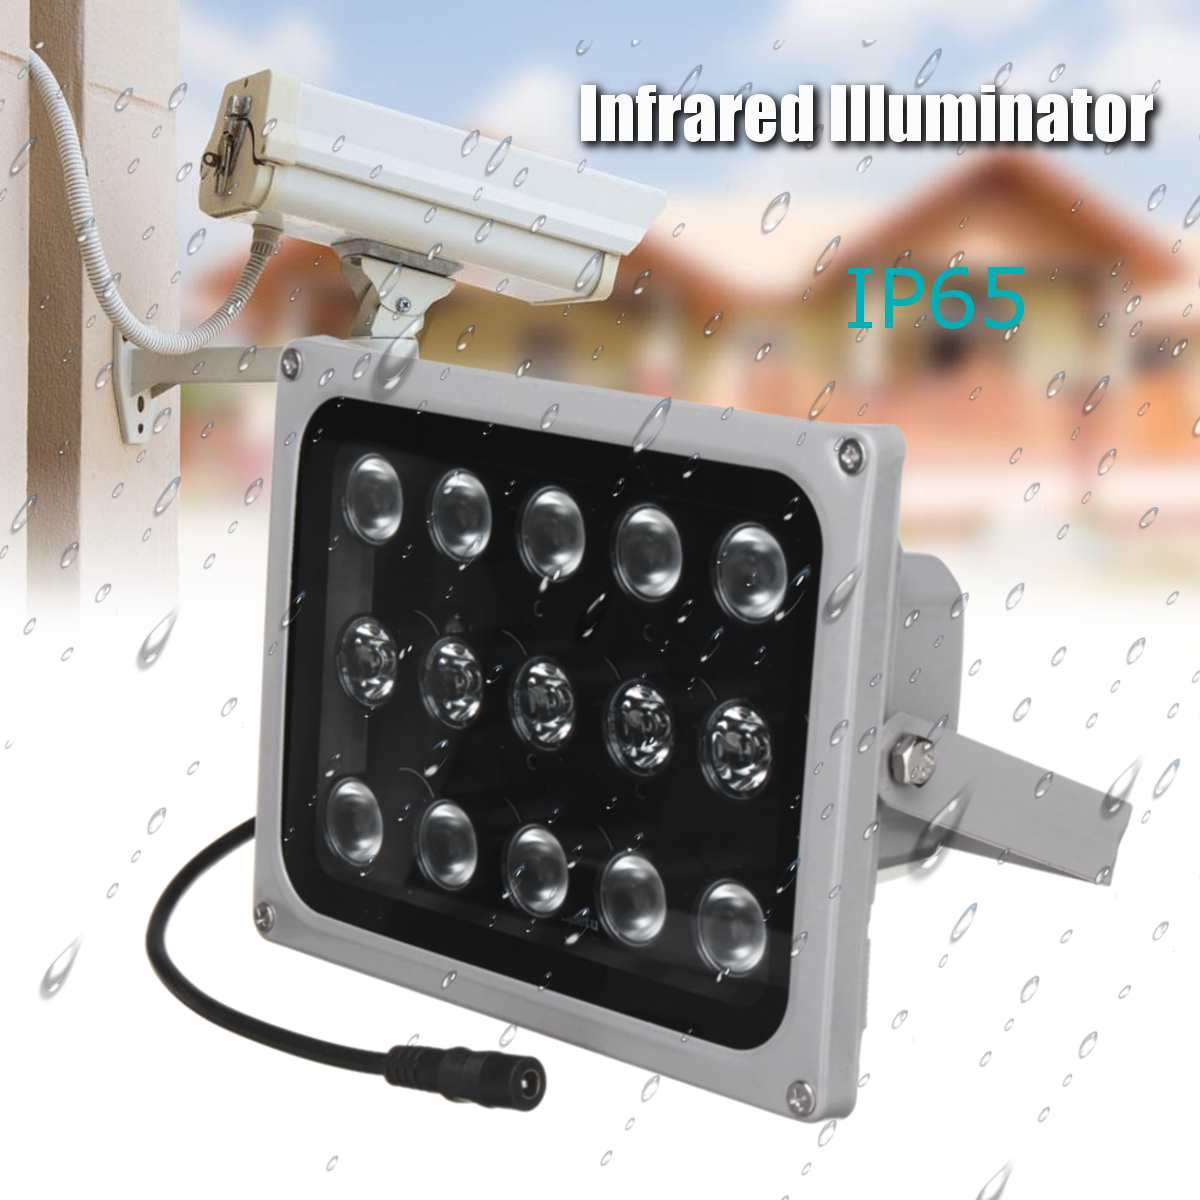 12V 15 LED Infrared for Illuminators Light Lamp Night Vision Metal Fill Light For CCTV Security Accessory Waterproof IP65